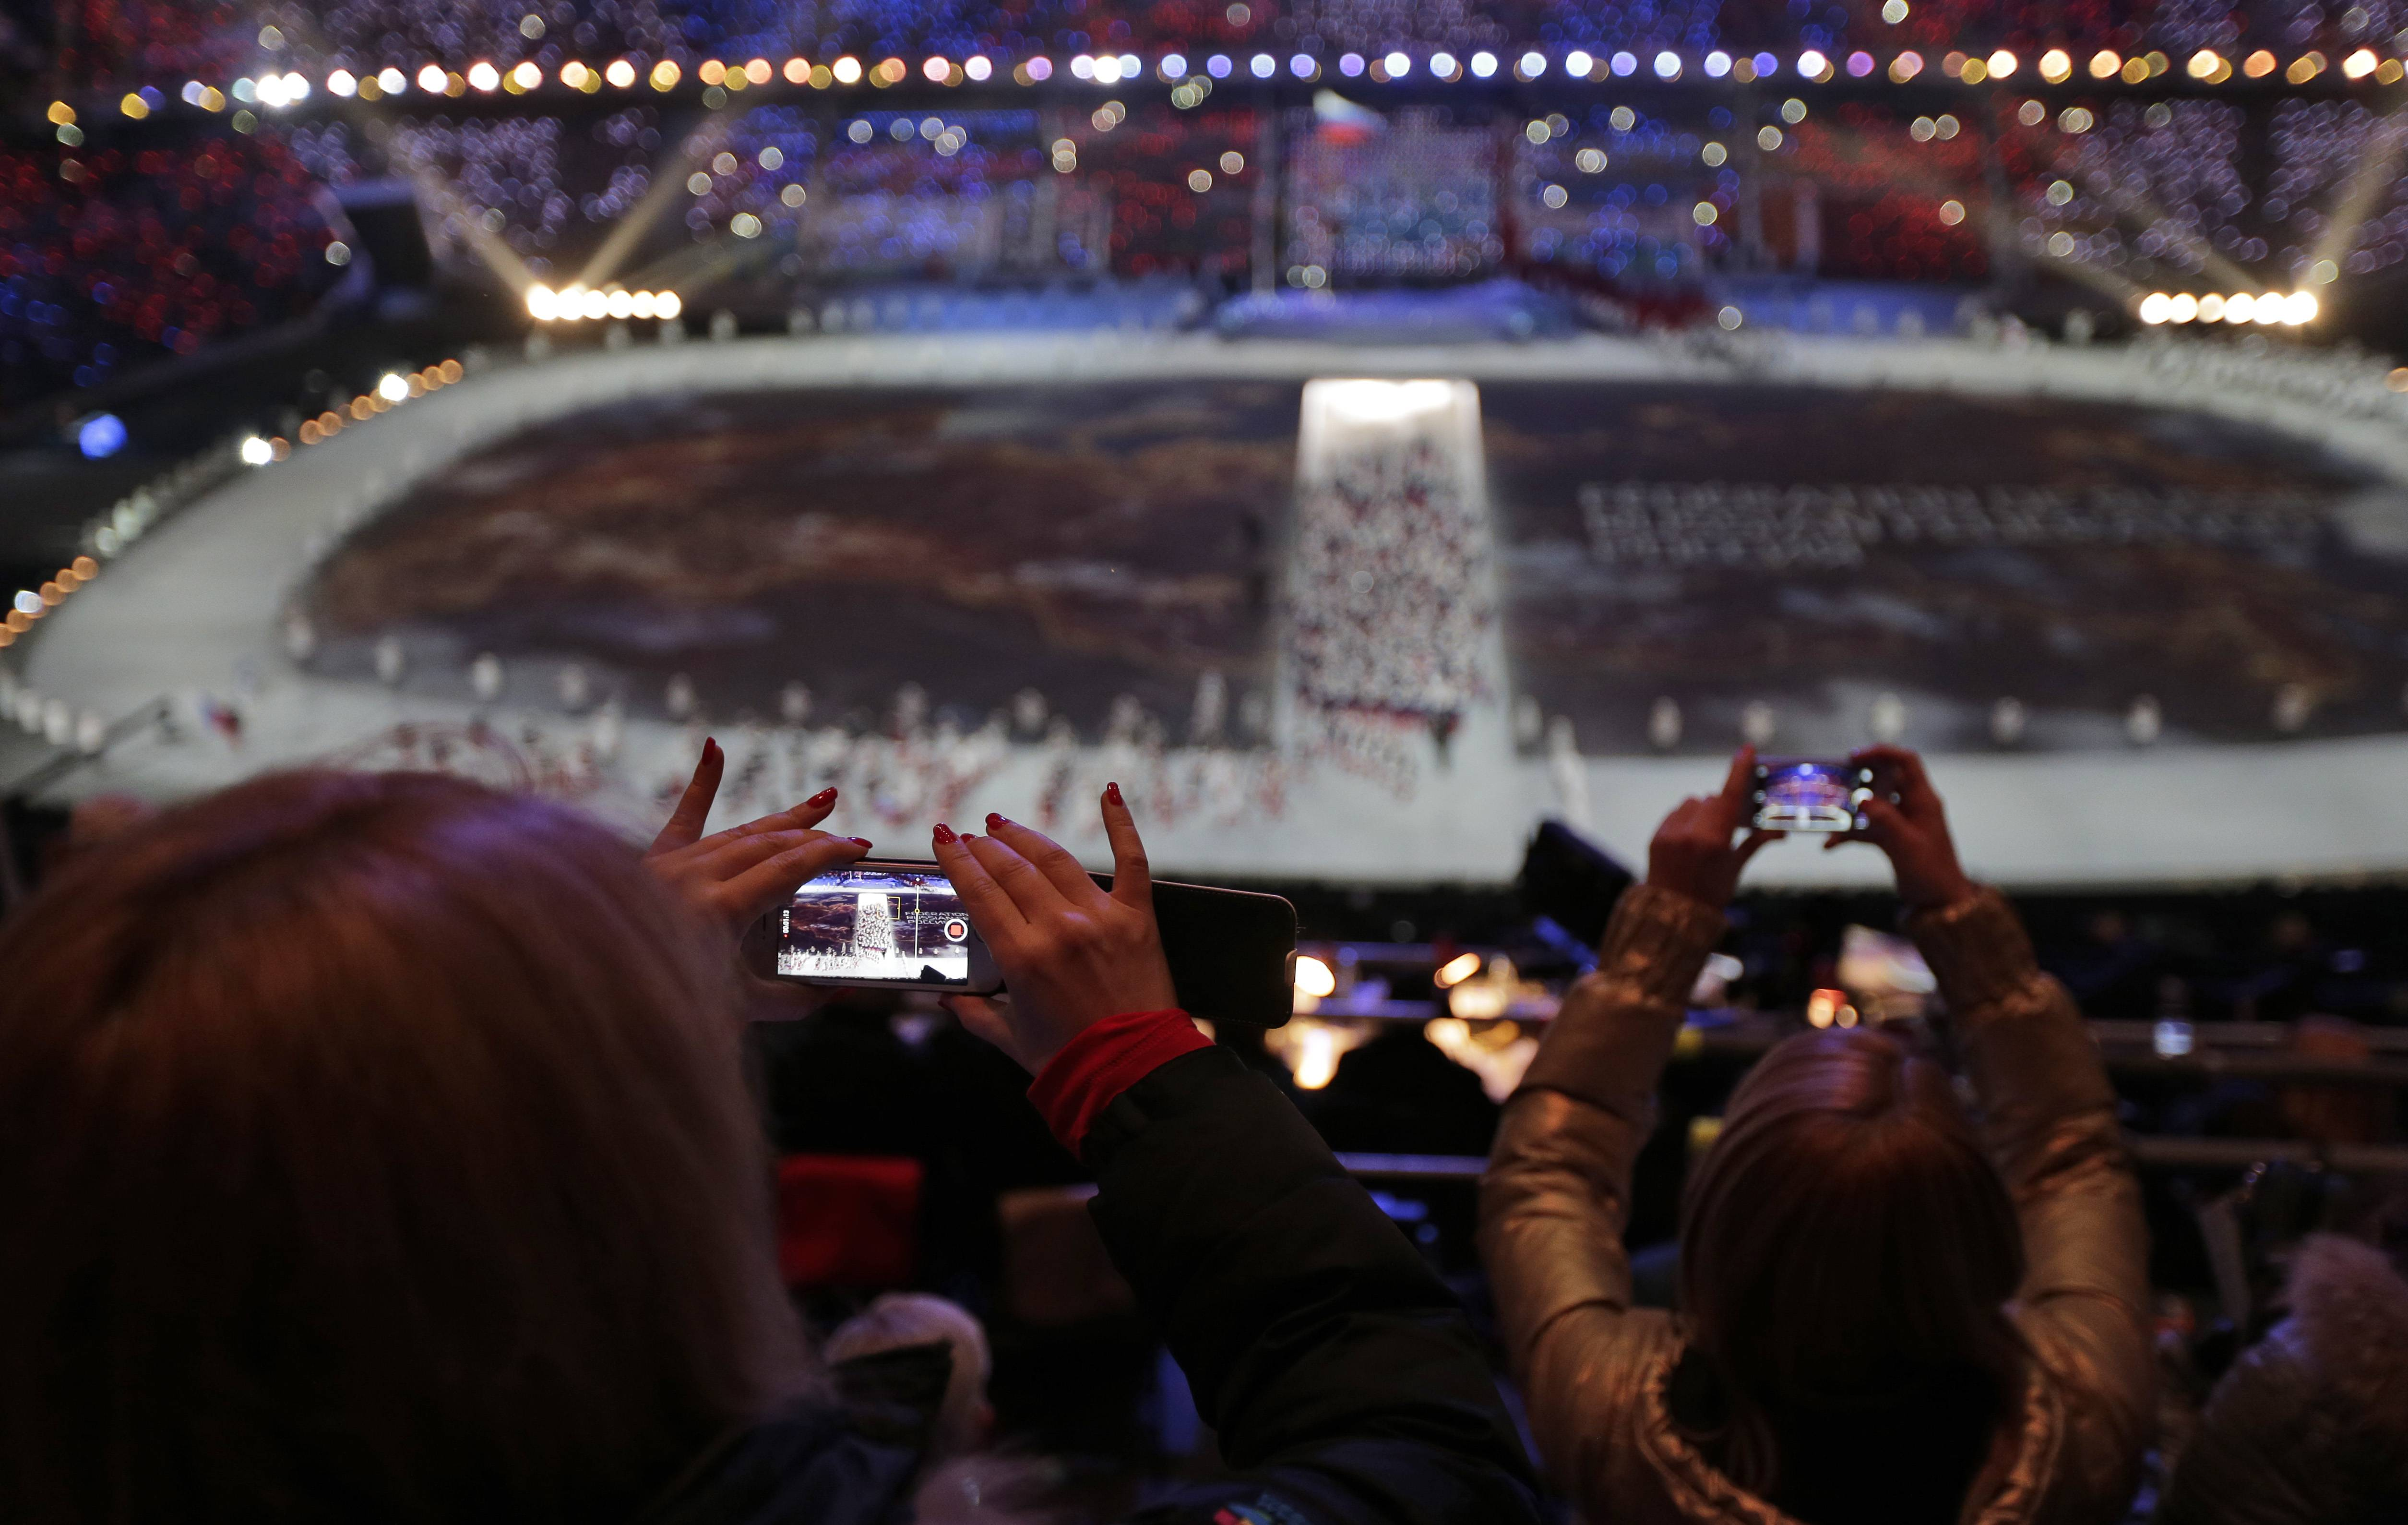 A spectator takes a video of the opening ceremony on her mobile phone at the 2014 Winter Olympics in Sochi, Russia.